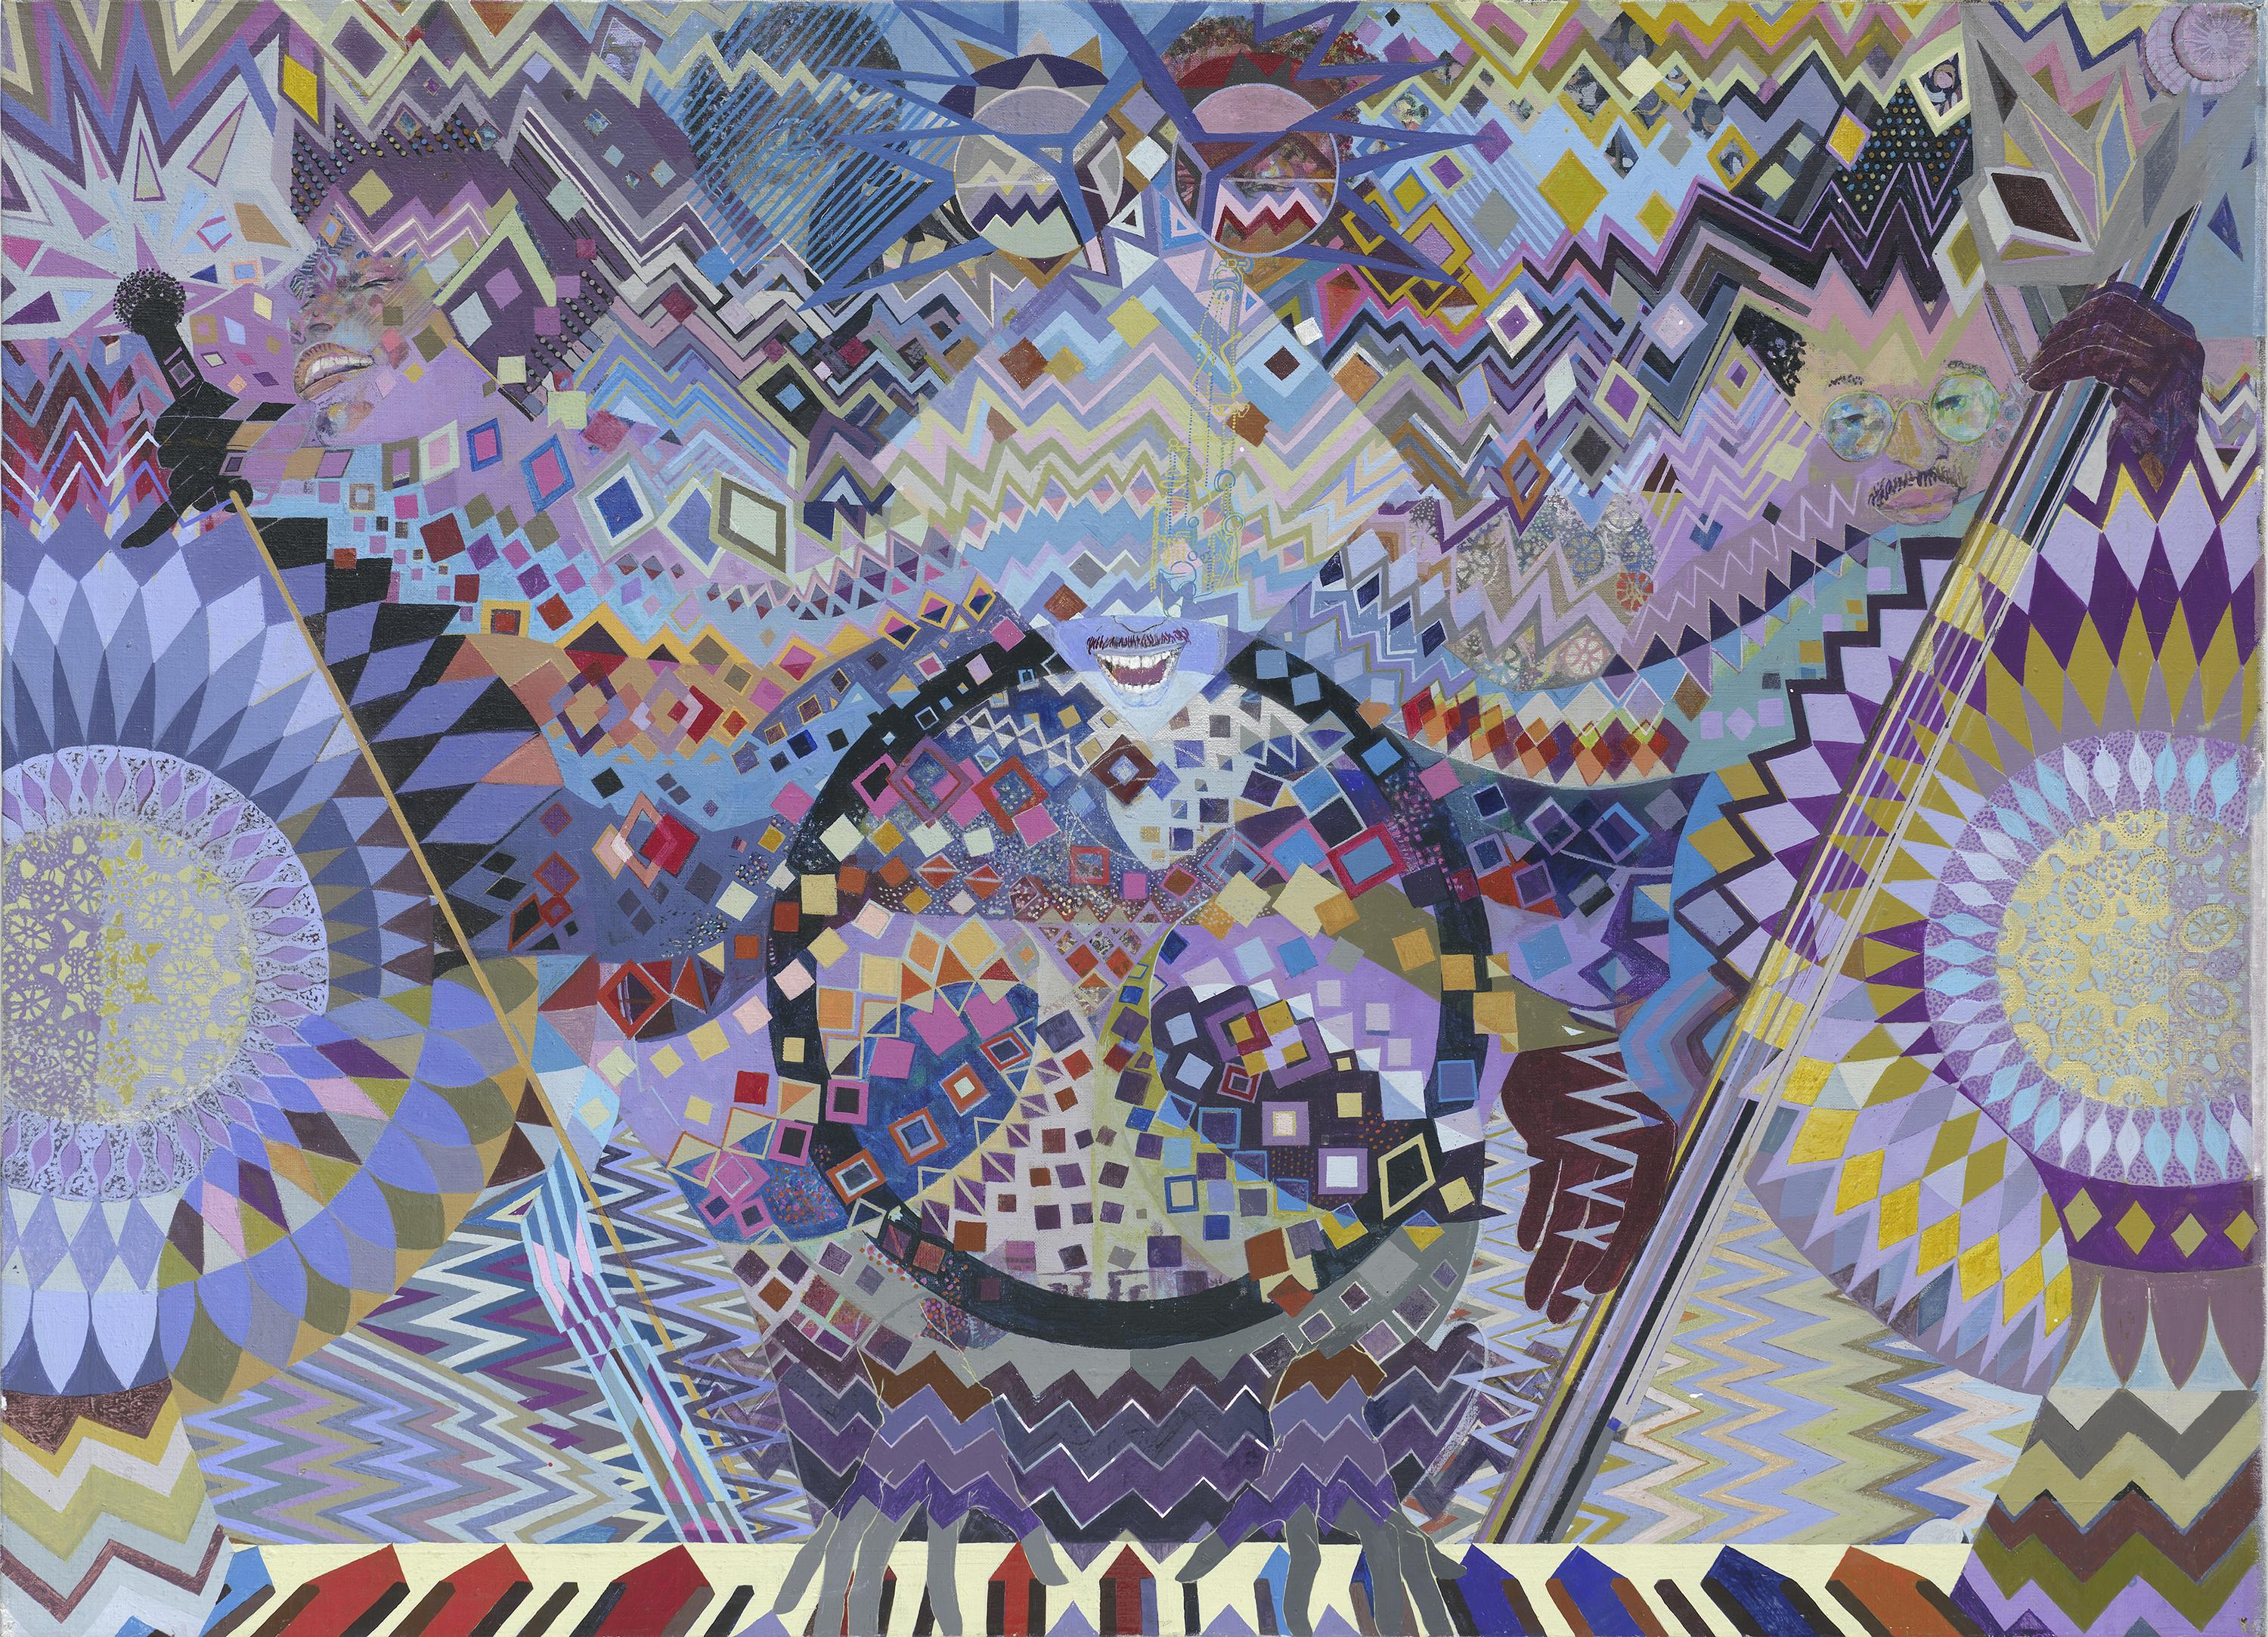 A colorful image composed of geometric shapes and patterns reveals a camouflaged trio of musicians. One sings, one plays piano, and the third strums a string bass.